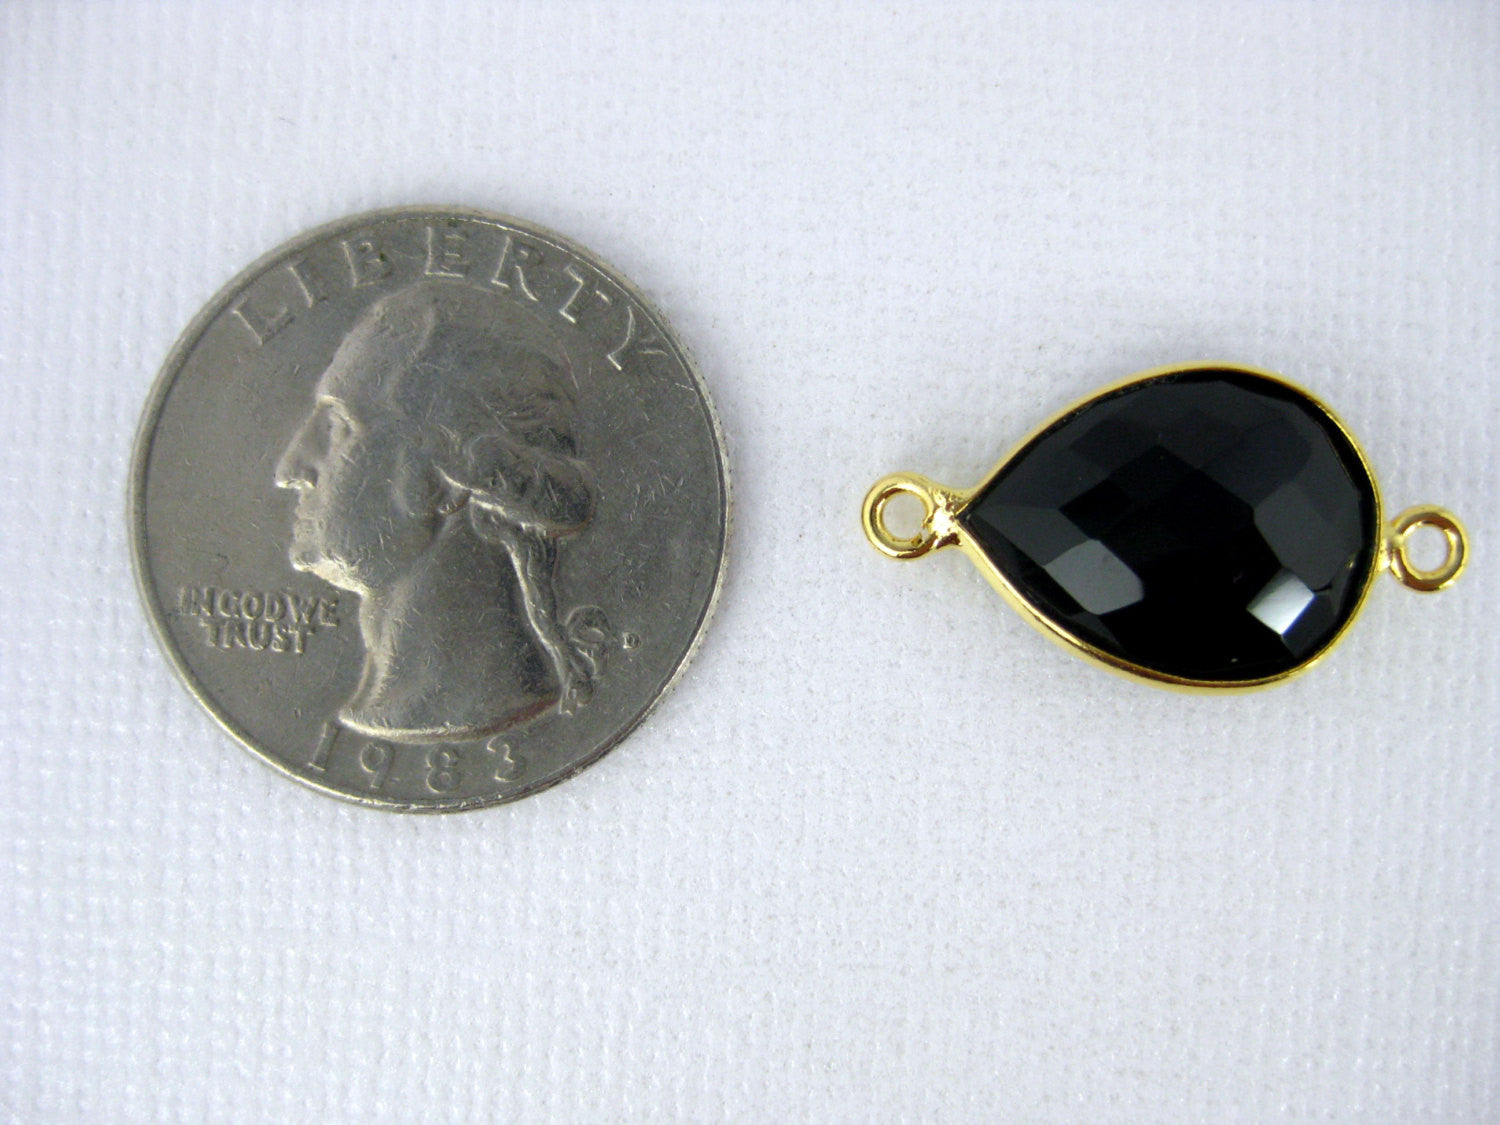 Bezel Connector Carnelian Station Teardrop Gemstone Connector - 12mm x 16mm Gold Over Sterling Bezel - Double Bail Charm Pendant (GW-08)